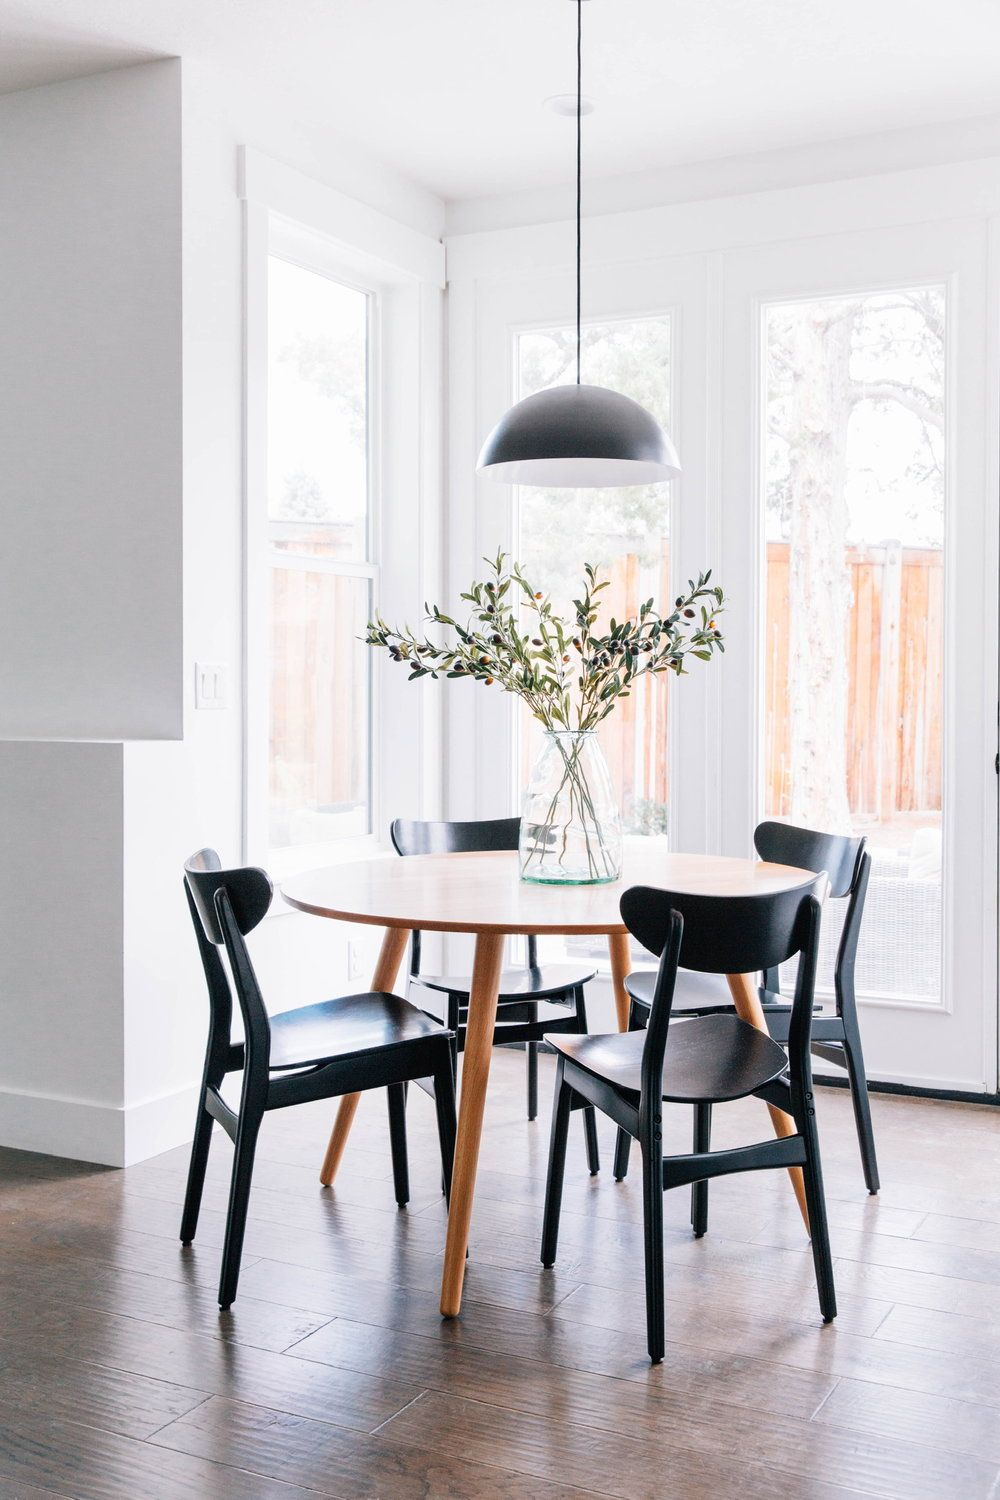 Black Dining Chairs Round Wood Table Modern Round Table Black Mushroom Pe Dining Room Design Round Table Round Dining Room Table Black Round Dining Table